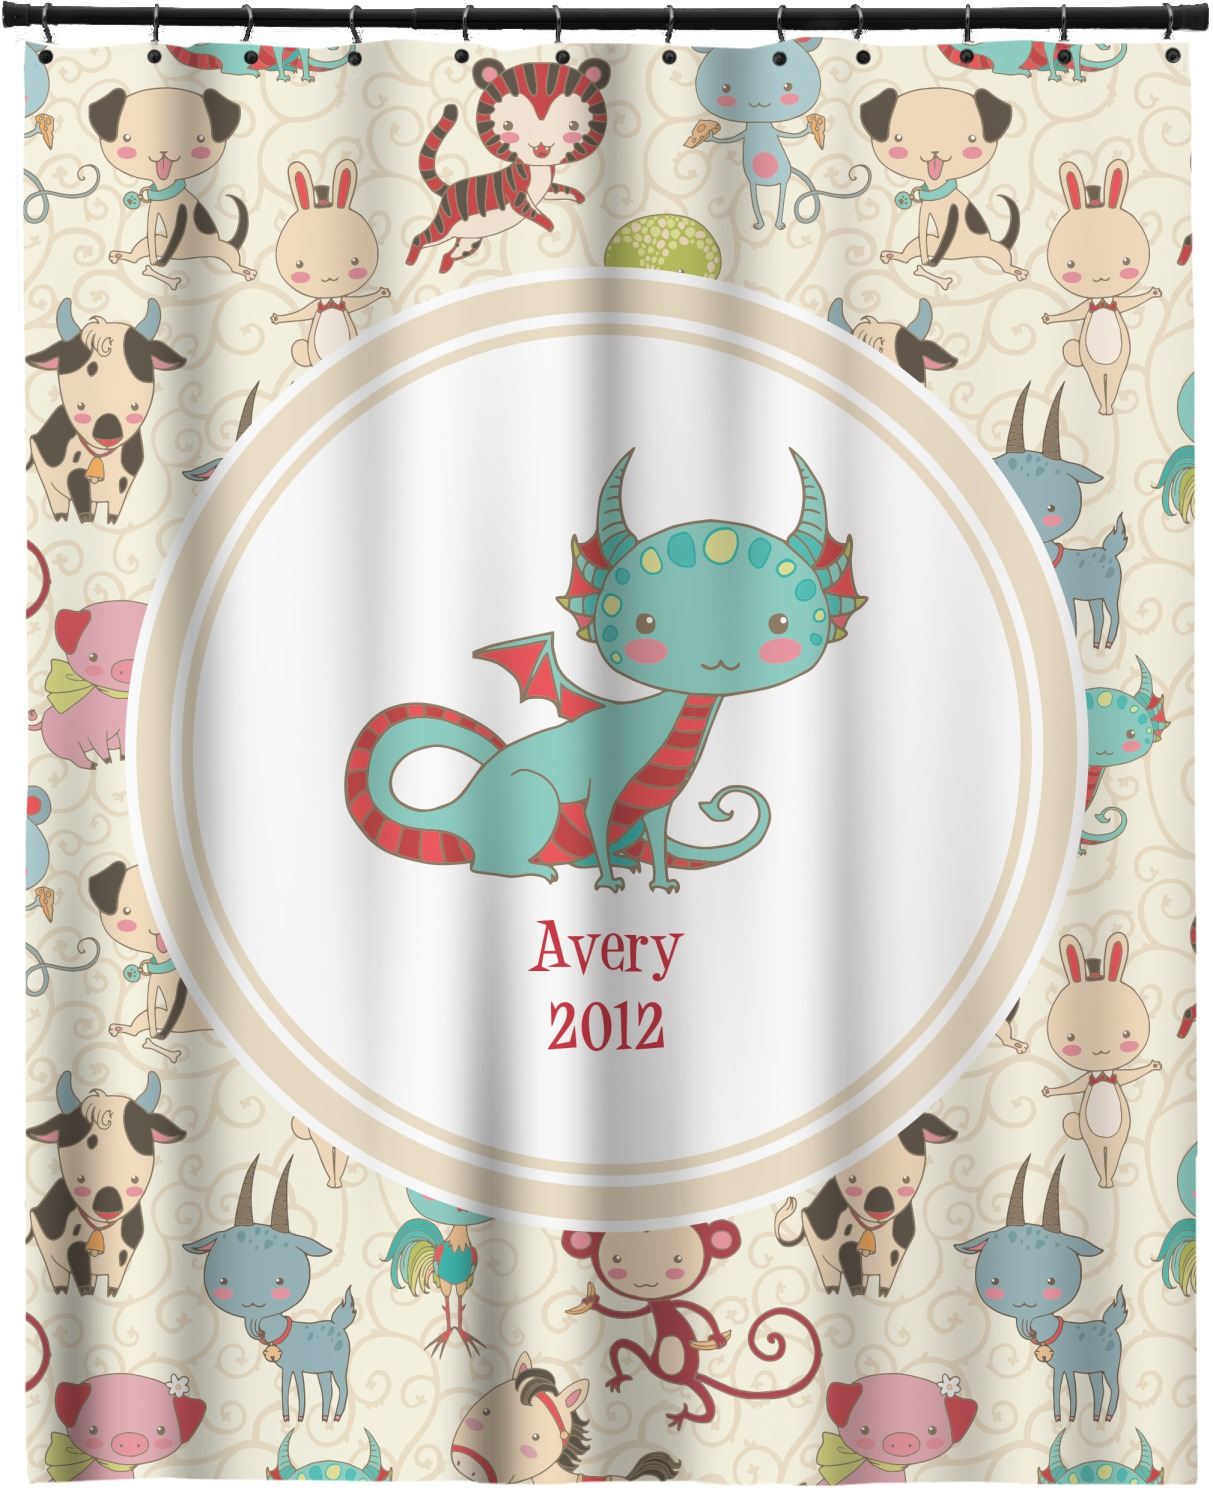 Chinese zodiac extra long shower curtain 70 x90 for Zodiac bathroom accessories